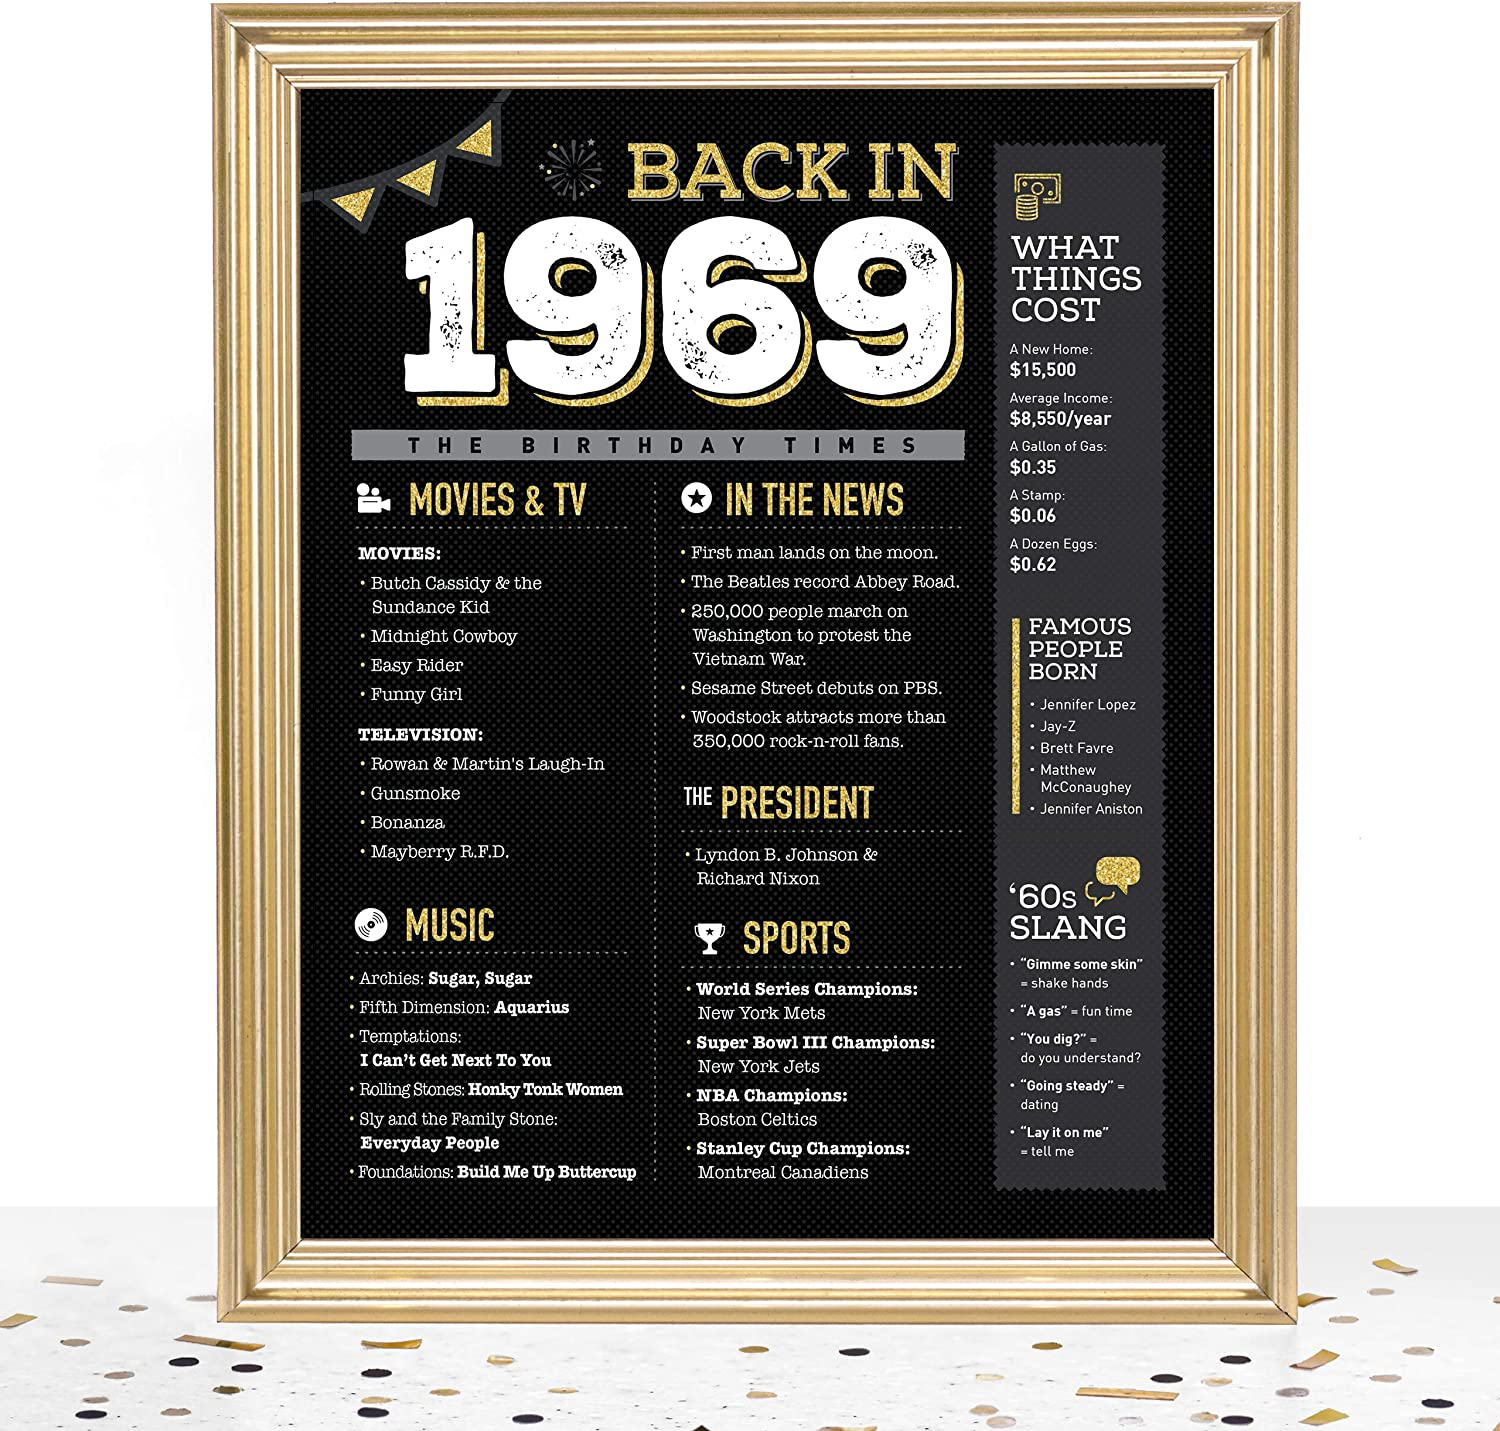 GoodSite Brands 51st Birthday Decorations Anniversary Centerpiece Gifts for Women Men   8x10 Back in 1969 Sign/Poster Unframed   Perfect Party Table Decor, Black/Gold with Fun Vintage Look